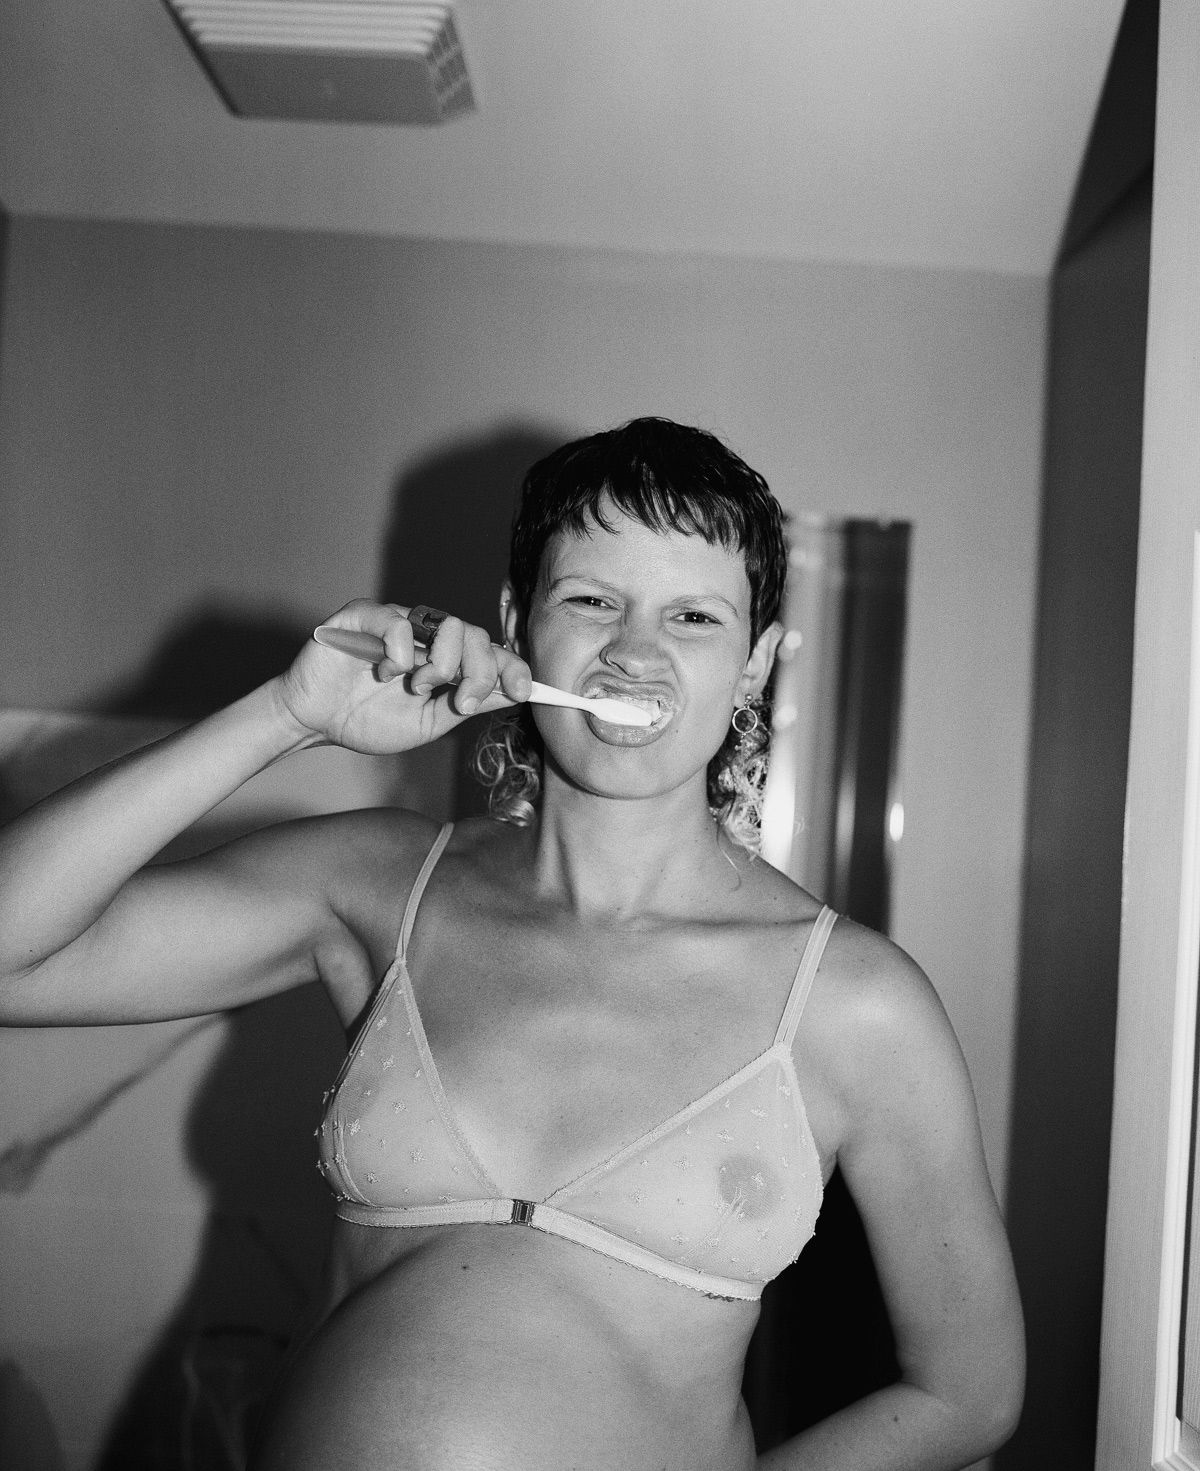 hair and makeup artist Valeria Amirova posing pregnant wearing ethically made clothes by Eliza Faulkner brushing her teeth in a bra photographed in black and white by Oumayma B Tanfous